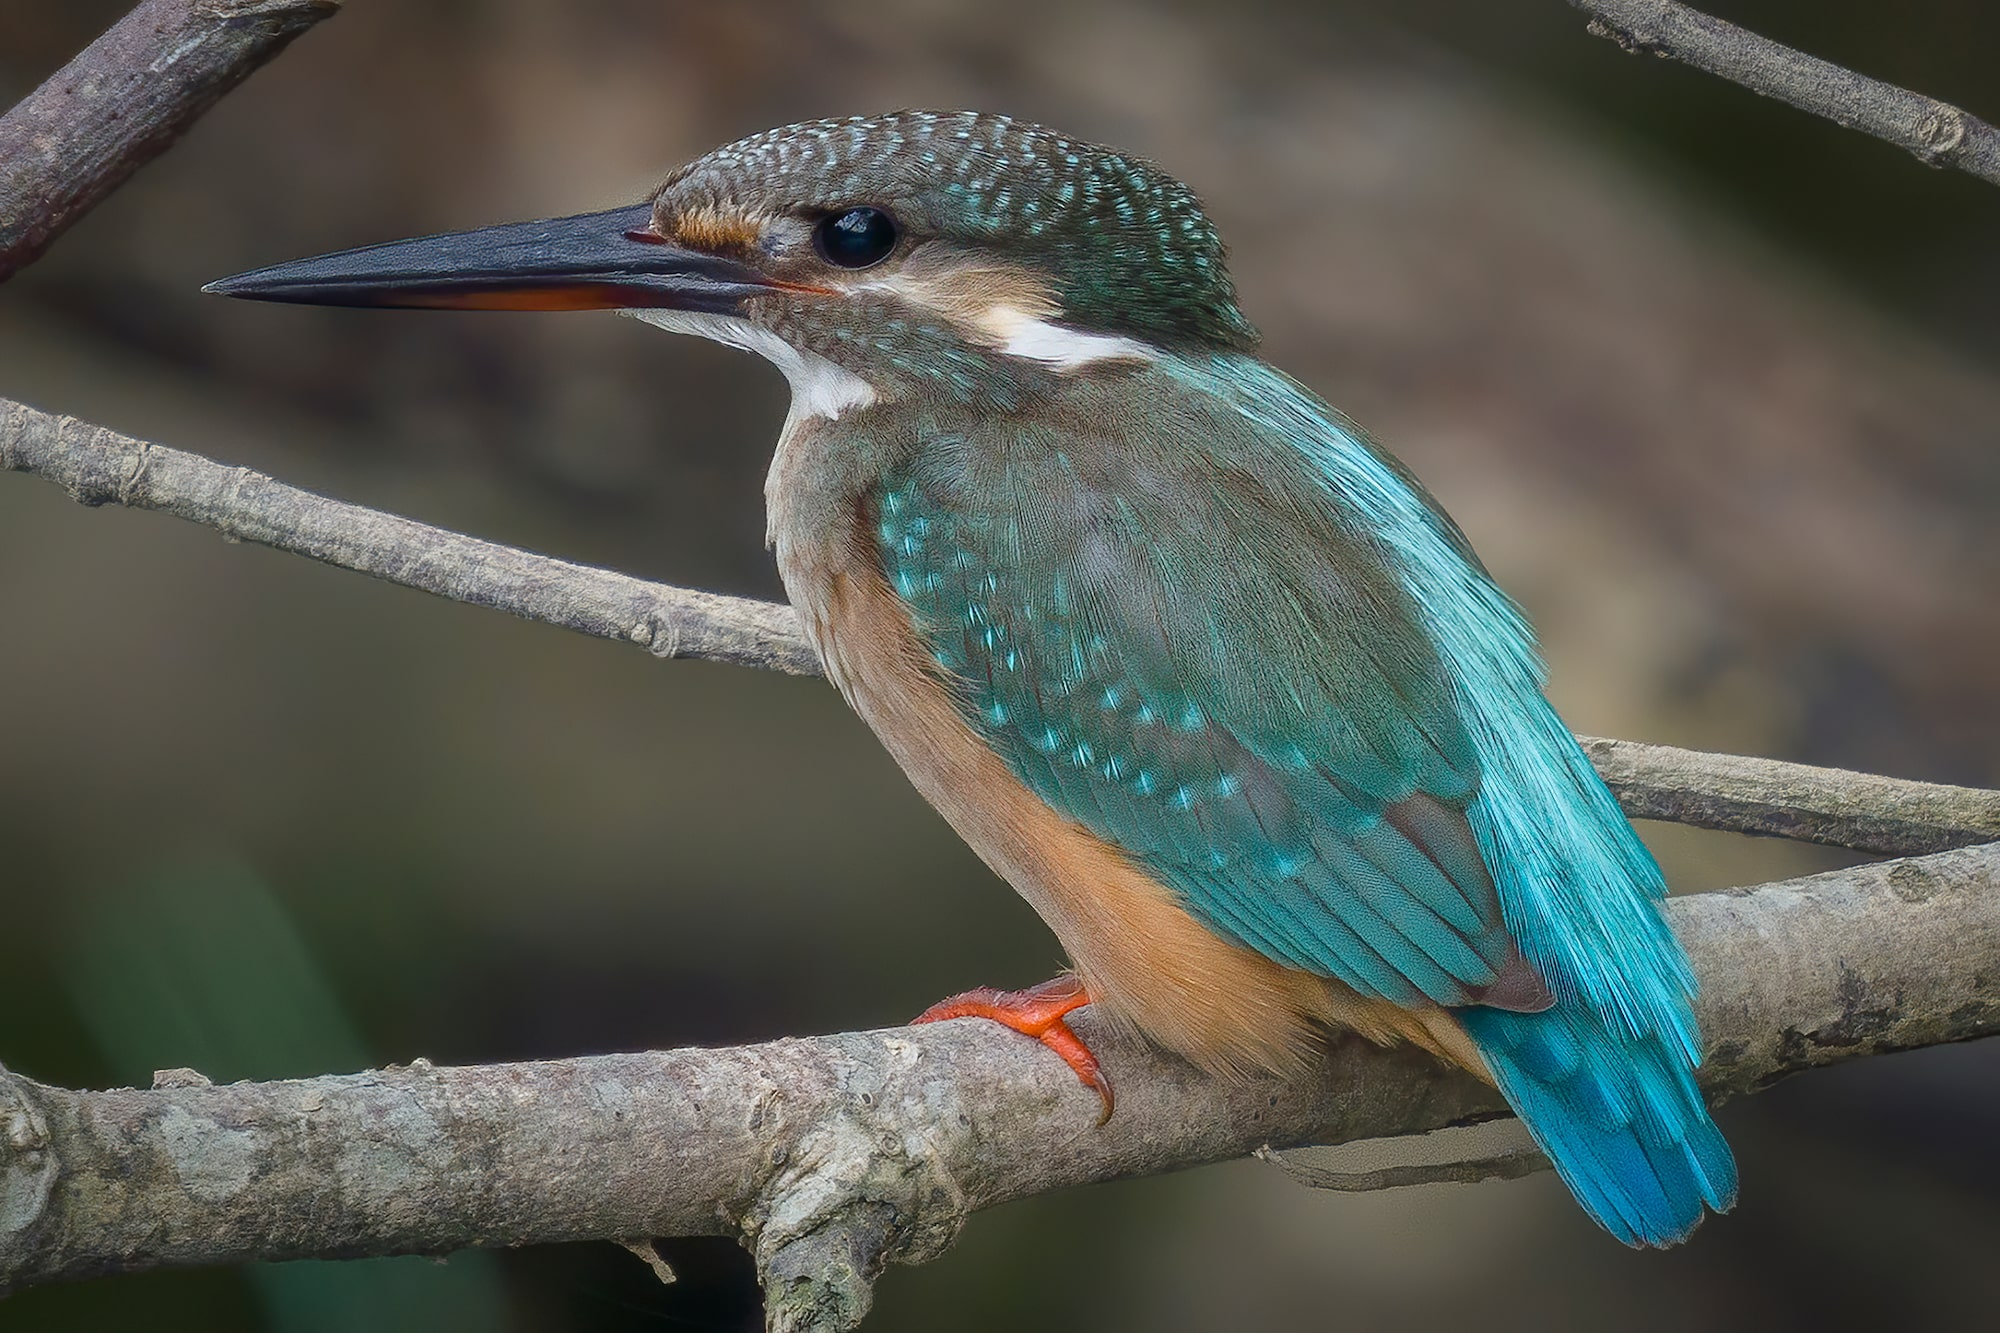 Sony Alpha 7R IV's 61 megapixels retain high resolution even after approx. 5x crop of Common Kingfisher on branch.